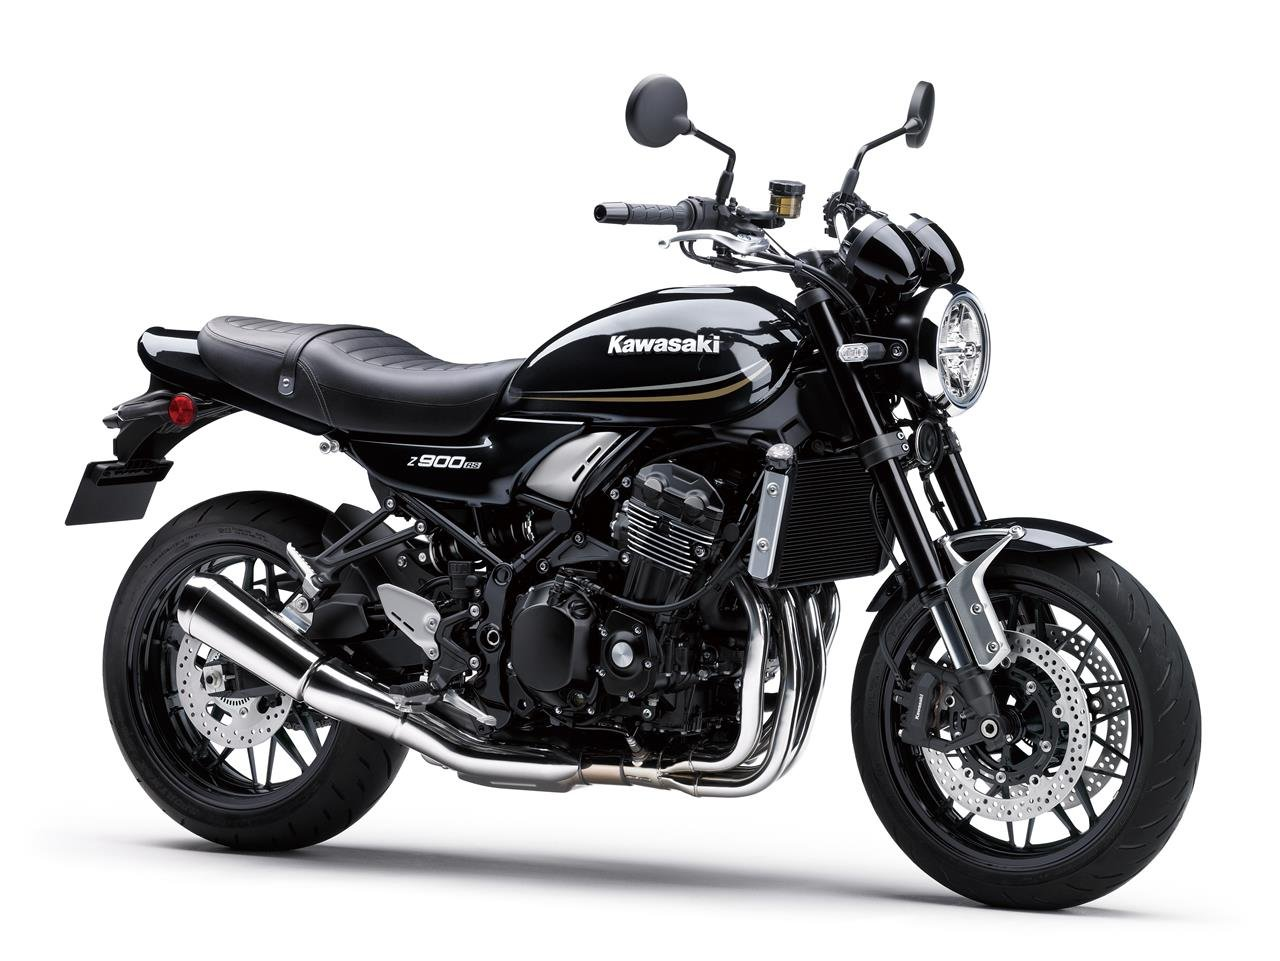 New 2018 Kawasaki Z900 RS ABS Retro Classic Roadster For Sale (picture 1 of 6)